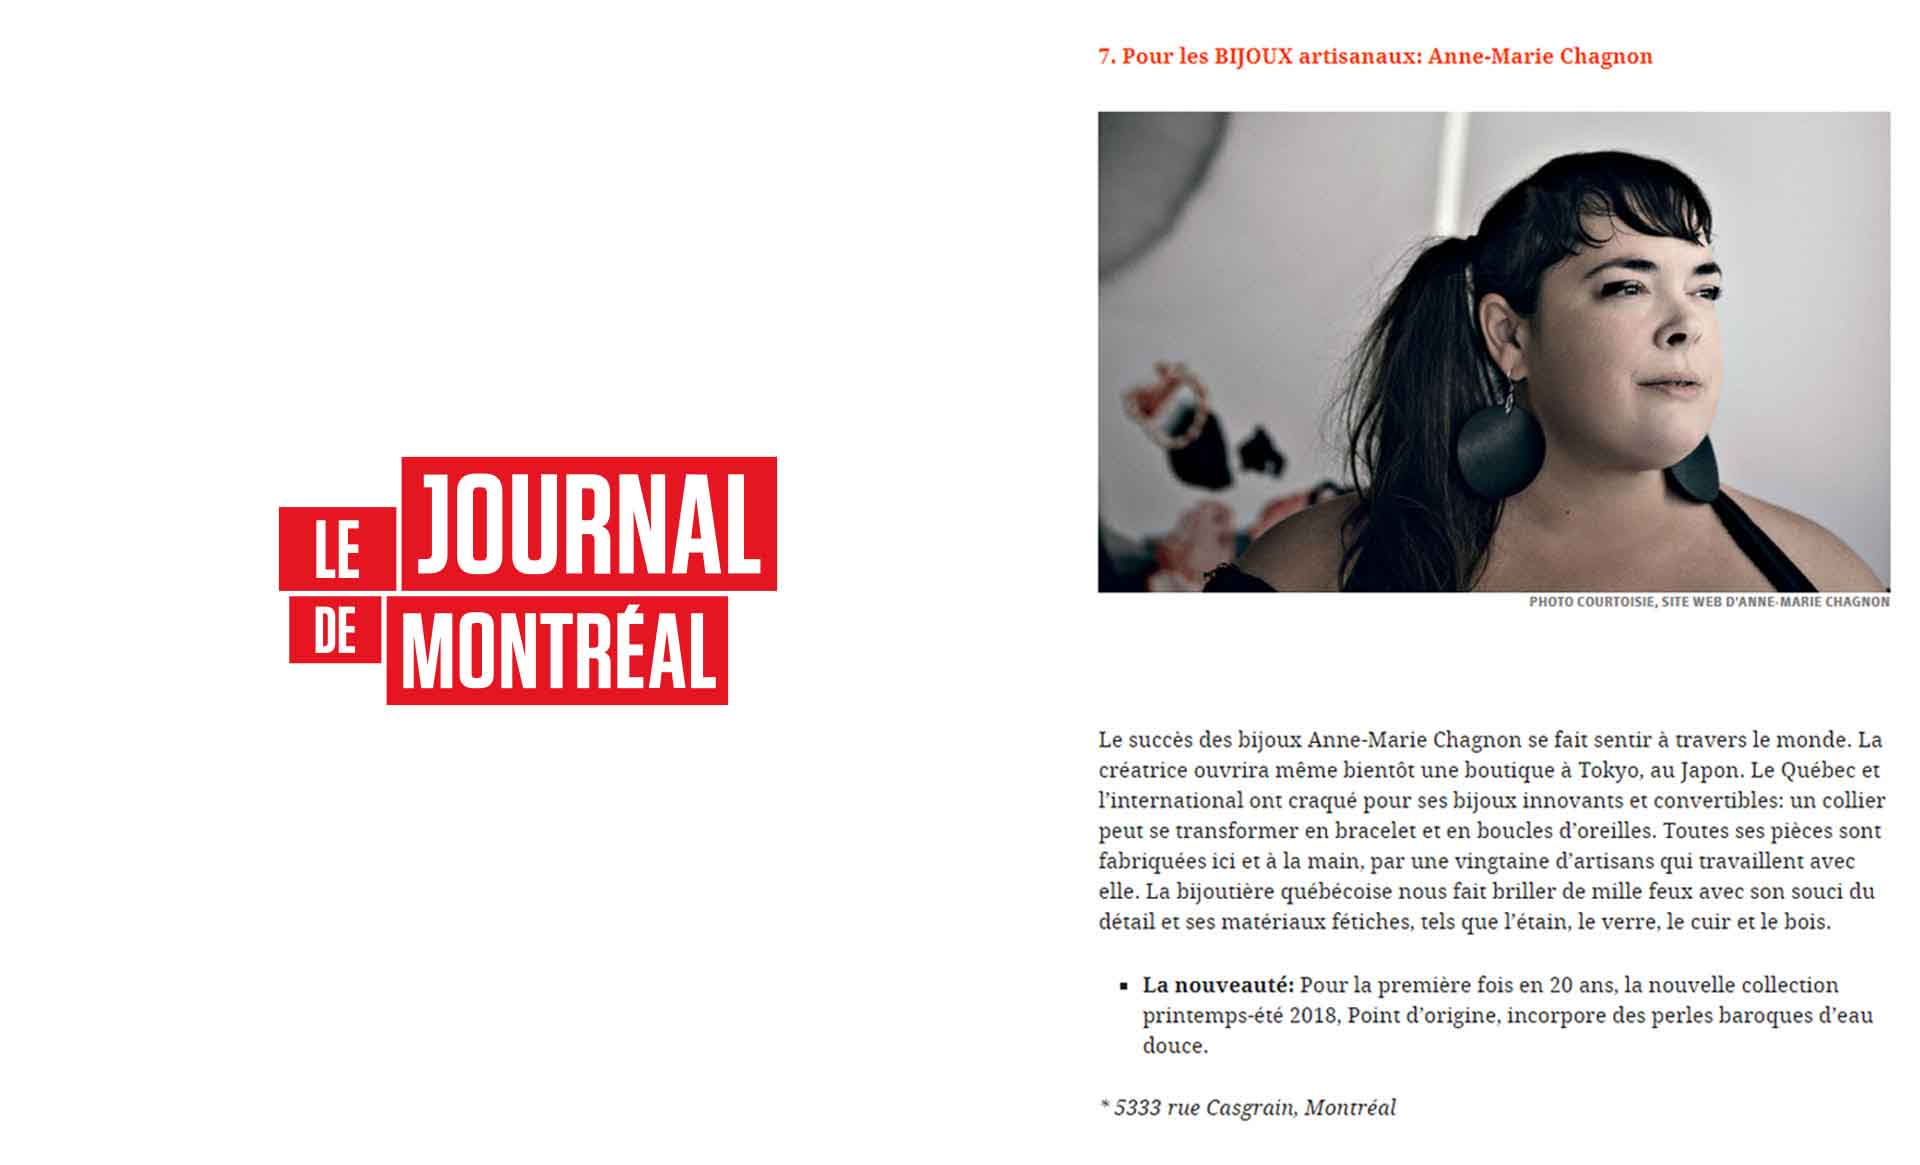 Special women's day : Le Journal de Montréal introduces Anne-Marie Chagnon